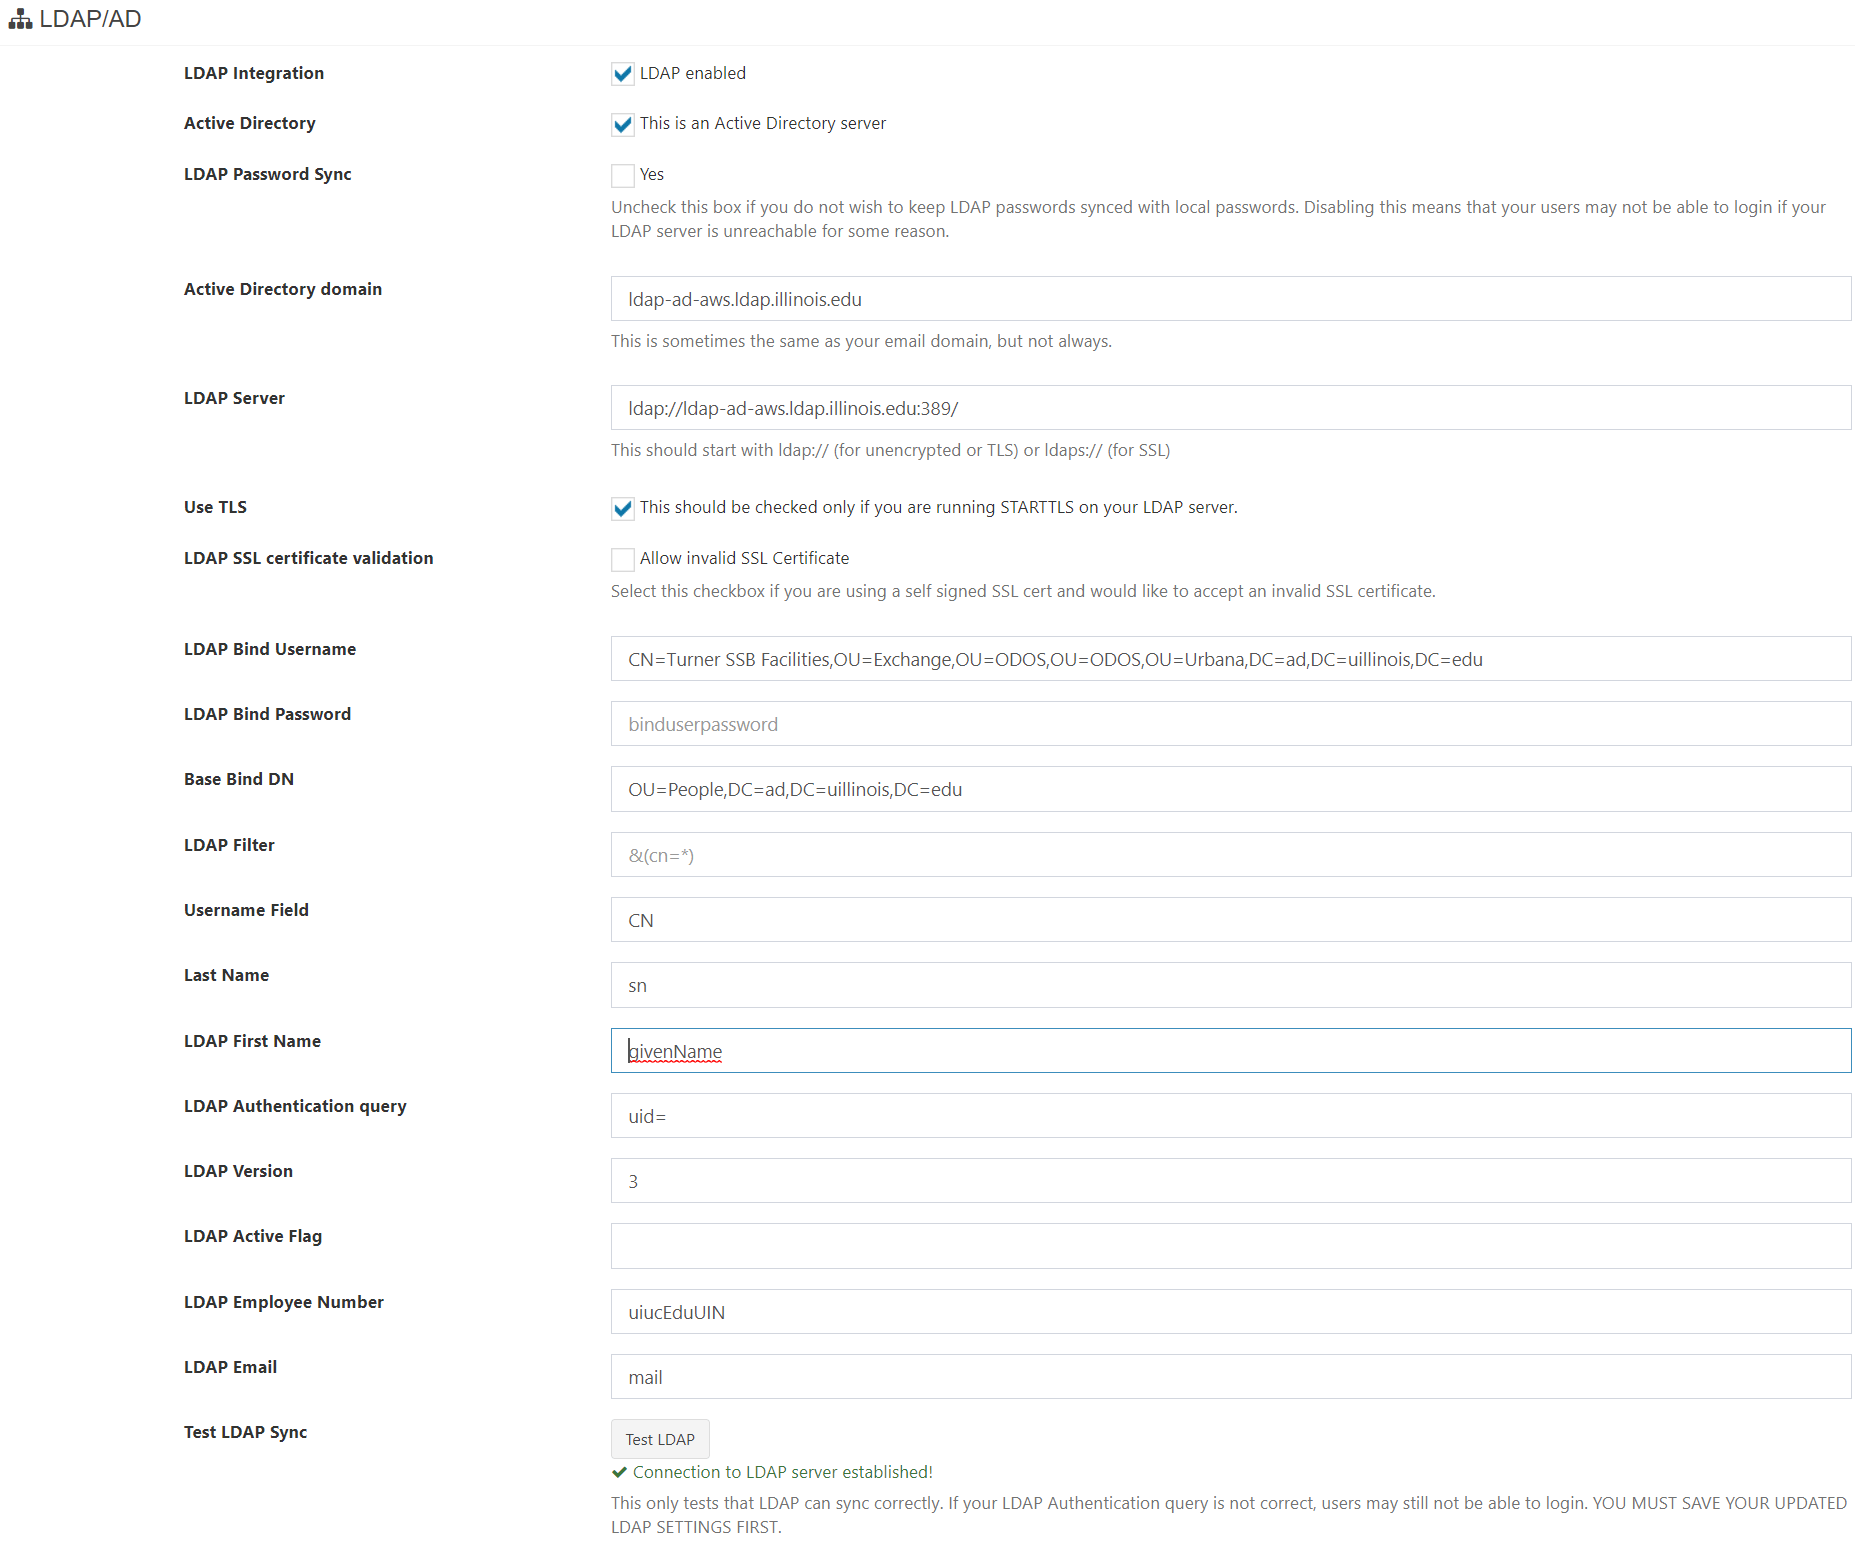 LDAP Able to Connect to Server on